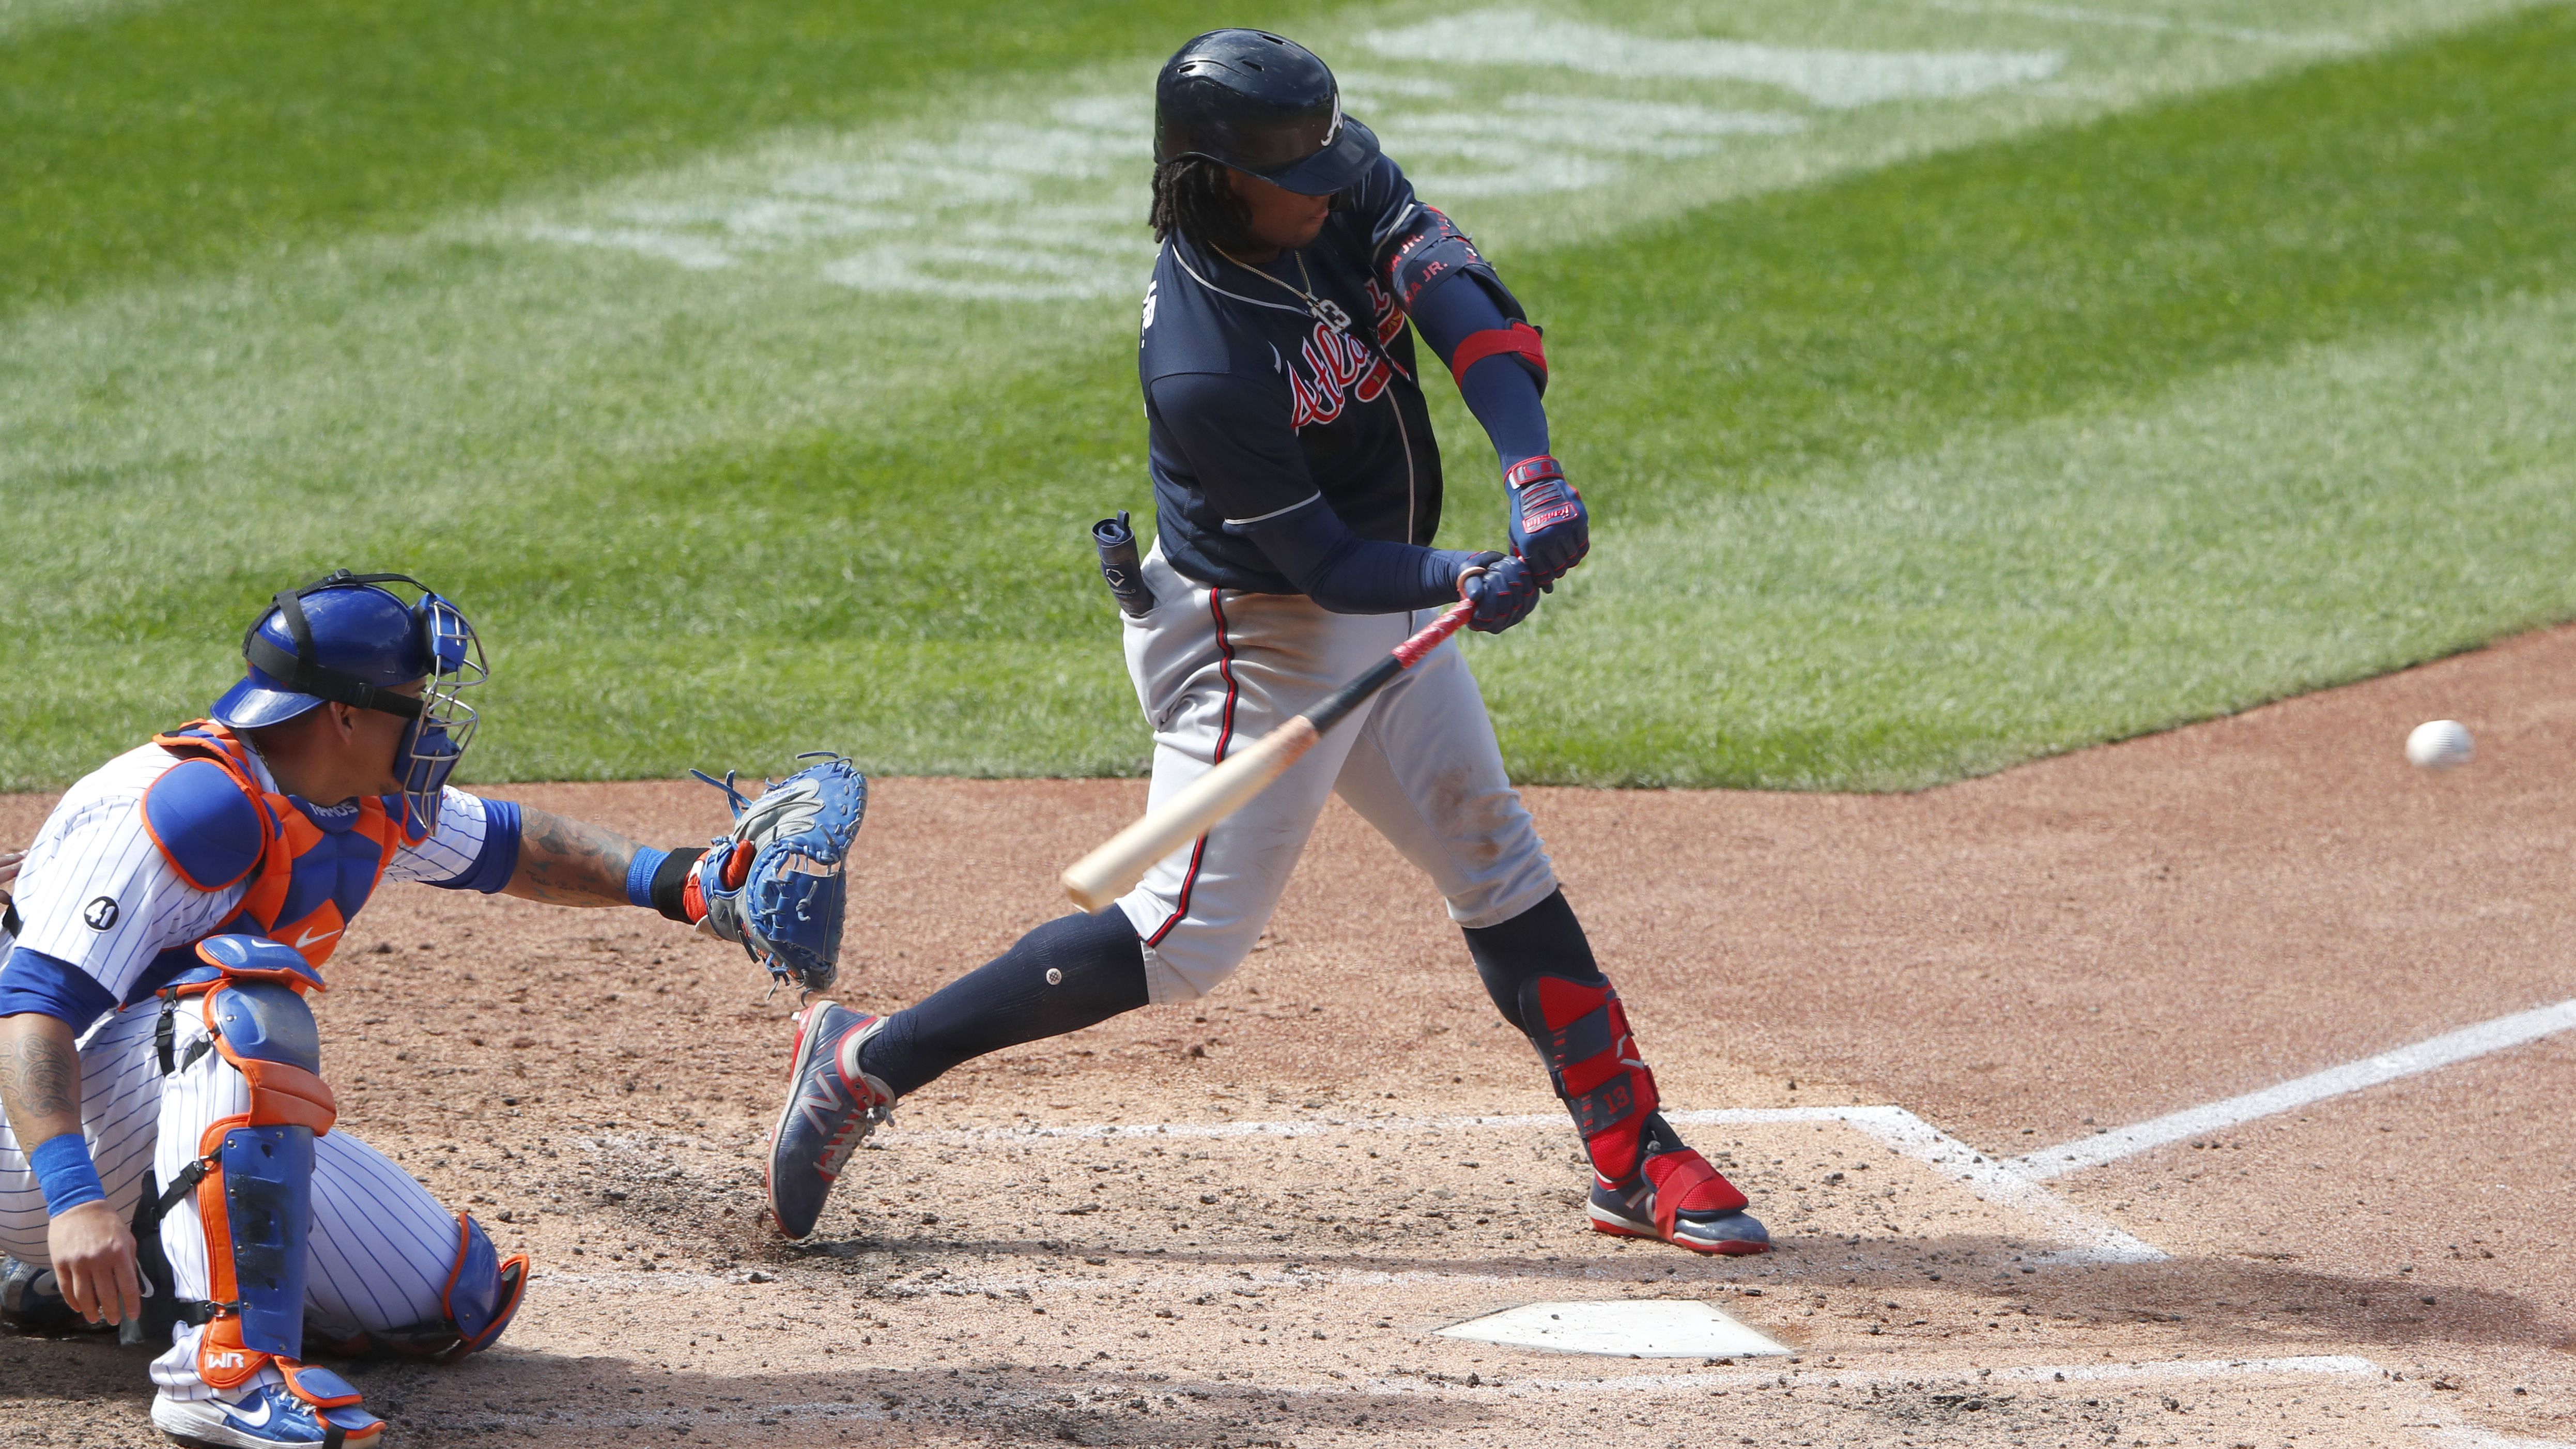 Leadoff Where Braves Stand Entering Final Week Before Playoffs